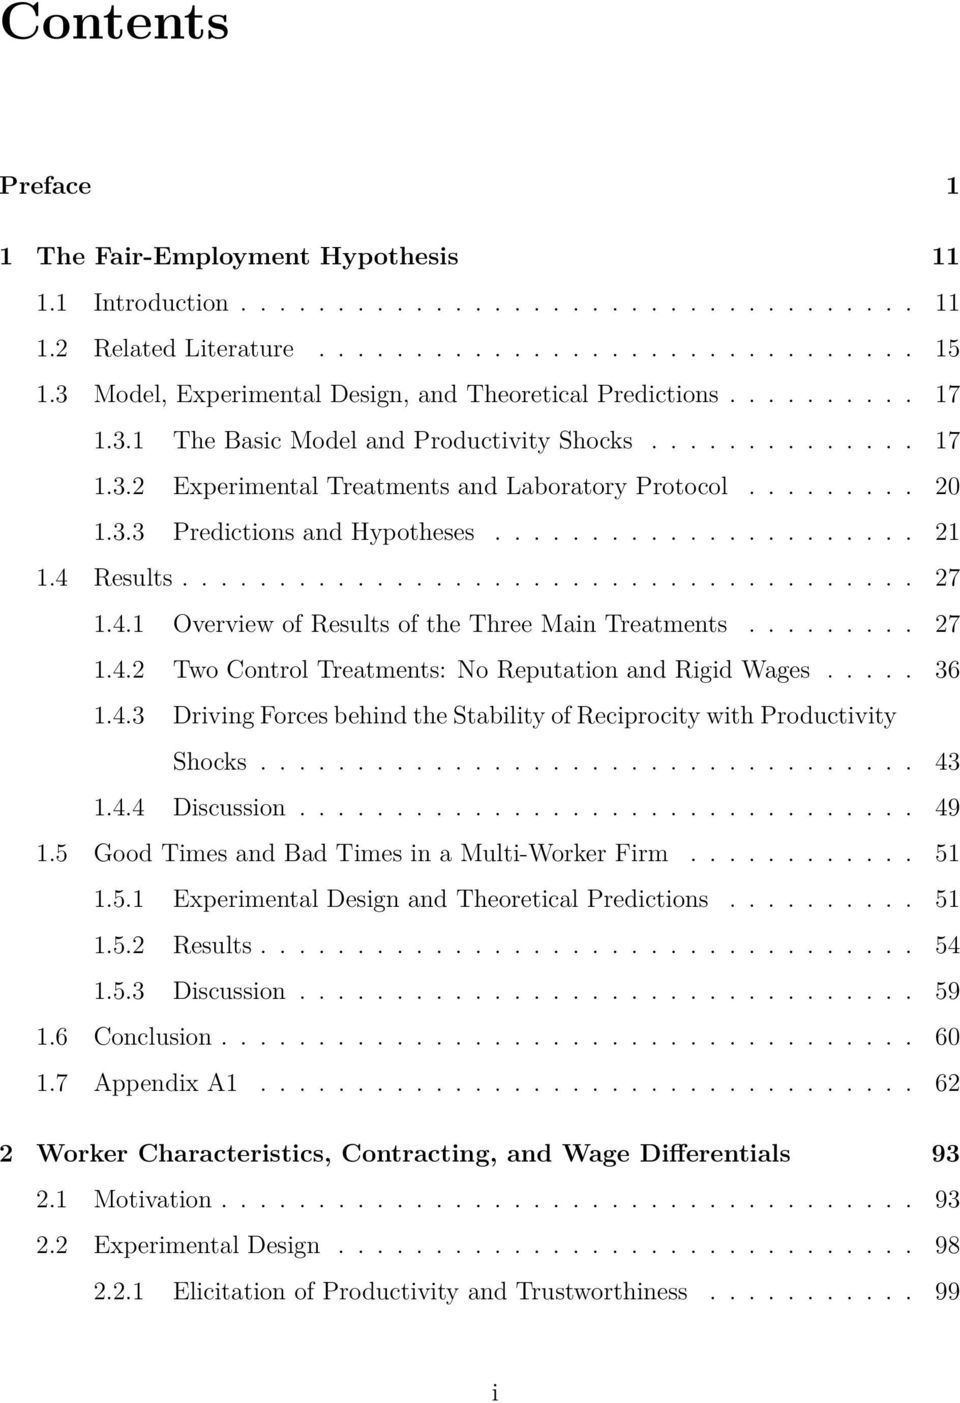 3.3 Predictions and Hypotheses...................... 21 1.4 Results...................................... 27 1.4.1 Overview of Results of the Three Main Treatments......... 27 1.4.2 Two Control Treatments: No Reputation and Rigid Wages.